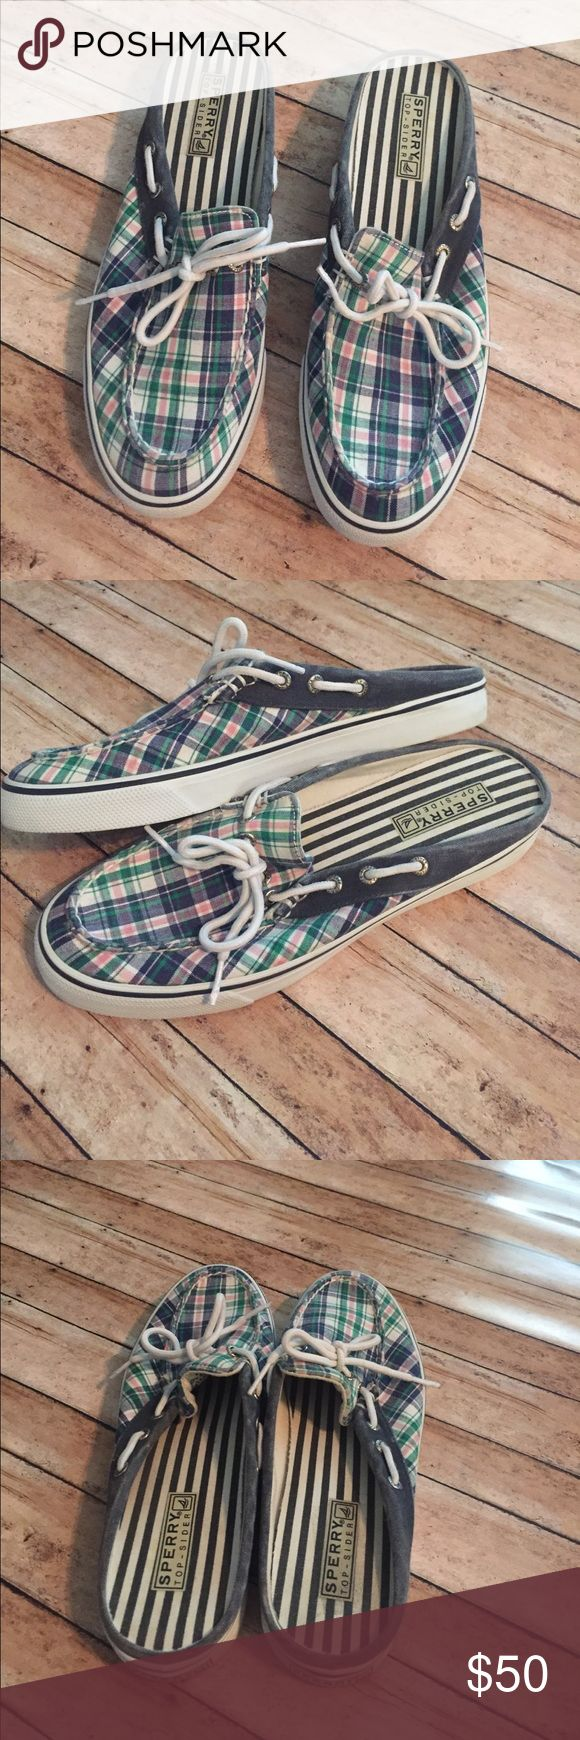 Sherry Top-Sider Plaid Slip-On Loafers Brand:  Sperry Top-Sider   Color: Plaid   Size: 8.5 Ladies   Condition: GUC, Show some wear but lots of life left in these.   ❌Trades❌  ⚡️I ship lightening fast⚡️  🎉Discounts with bundles🎉 Sperry Top-Sider Shoes Flats & Loafers